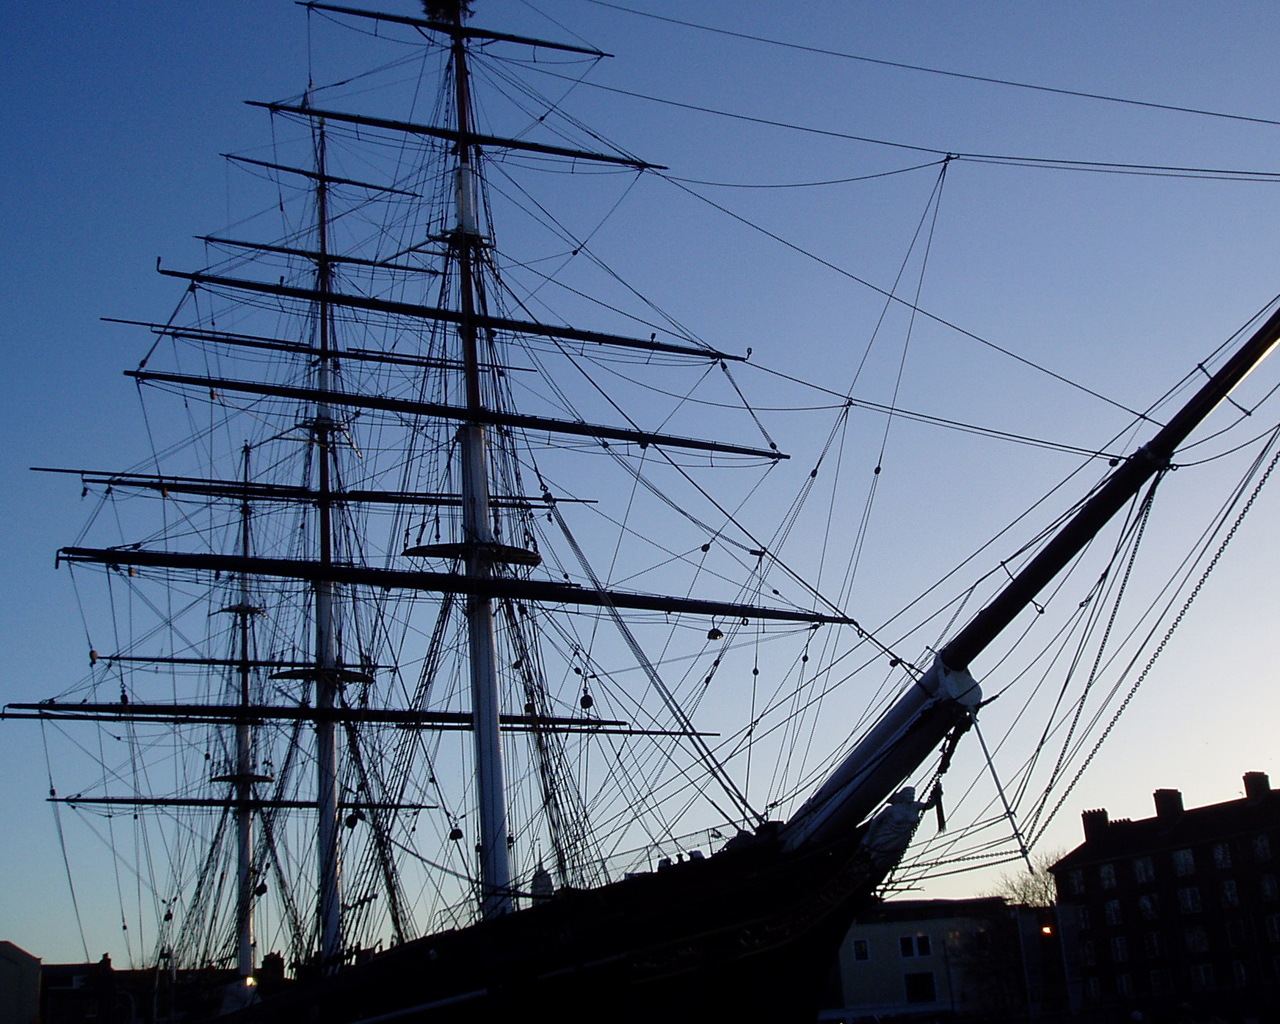 Her Majesty The Queen Reopens Cutty Sark on 25 April 2012